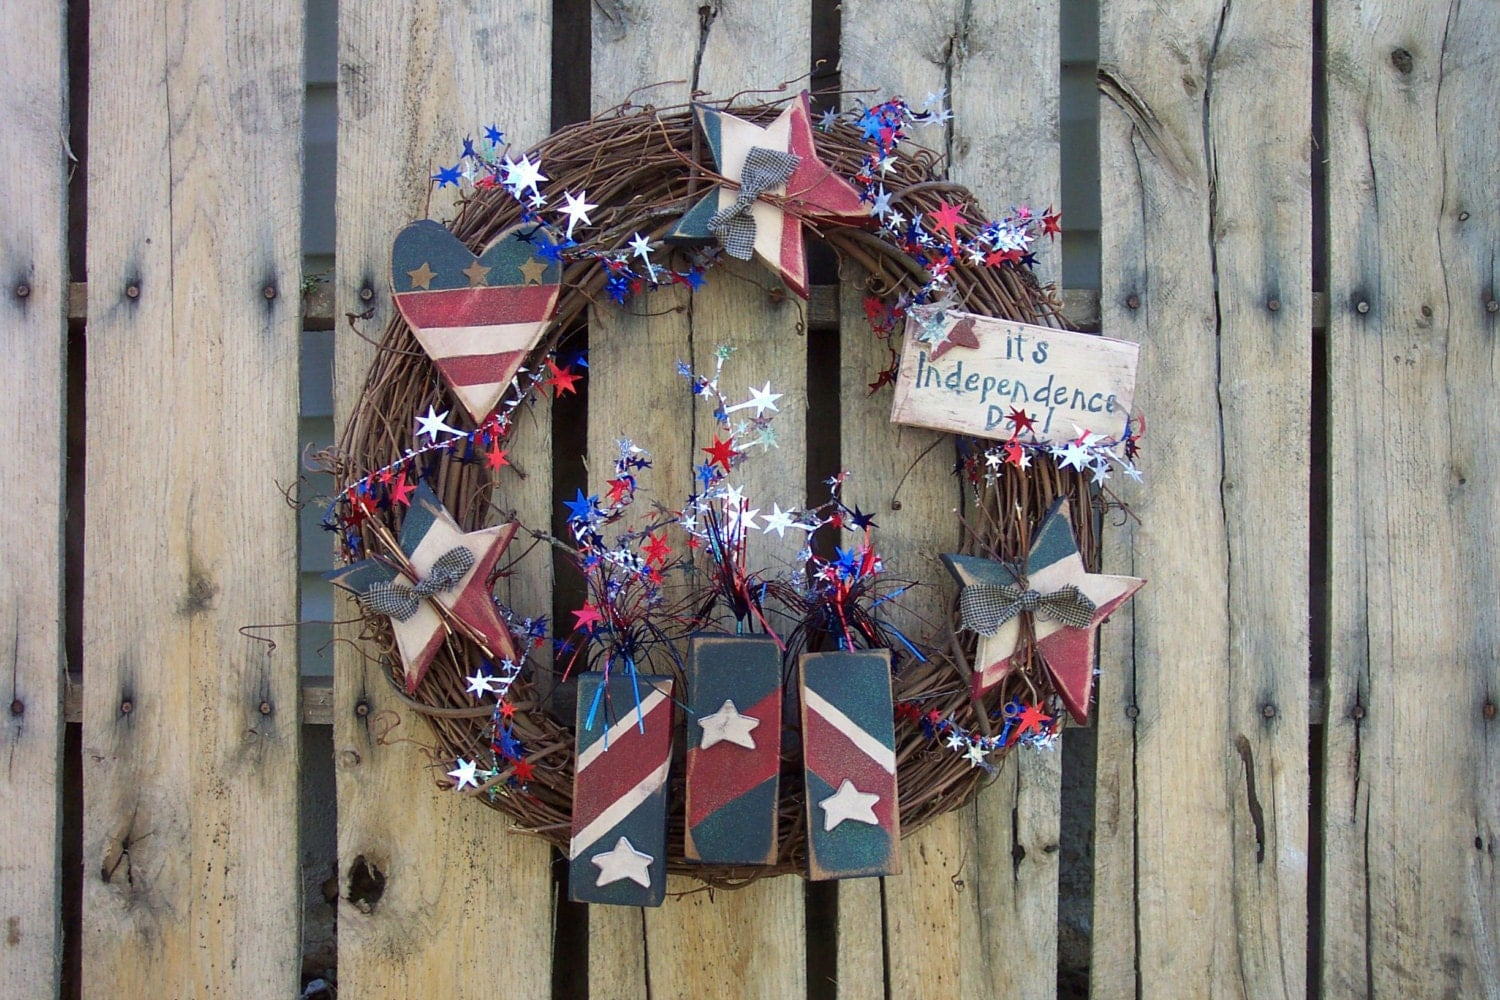 Independence Day Wreath Pattern incorportating Wood Hearts, Firecrackers & Rustic Stars Americana Craft Pattern for the 4th of July - KaylasKornerDesigns